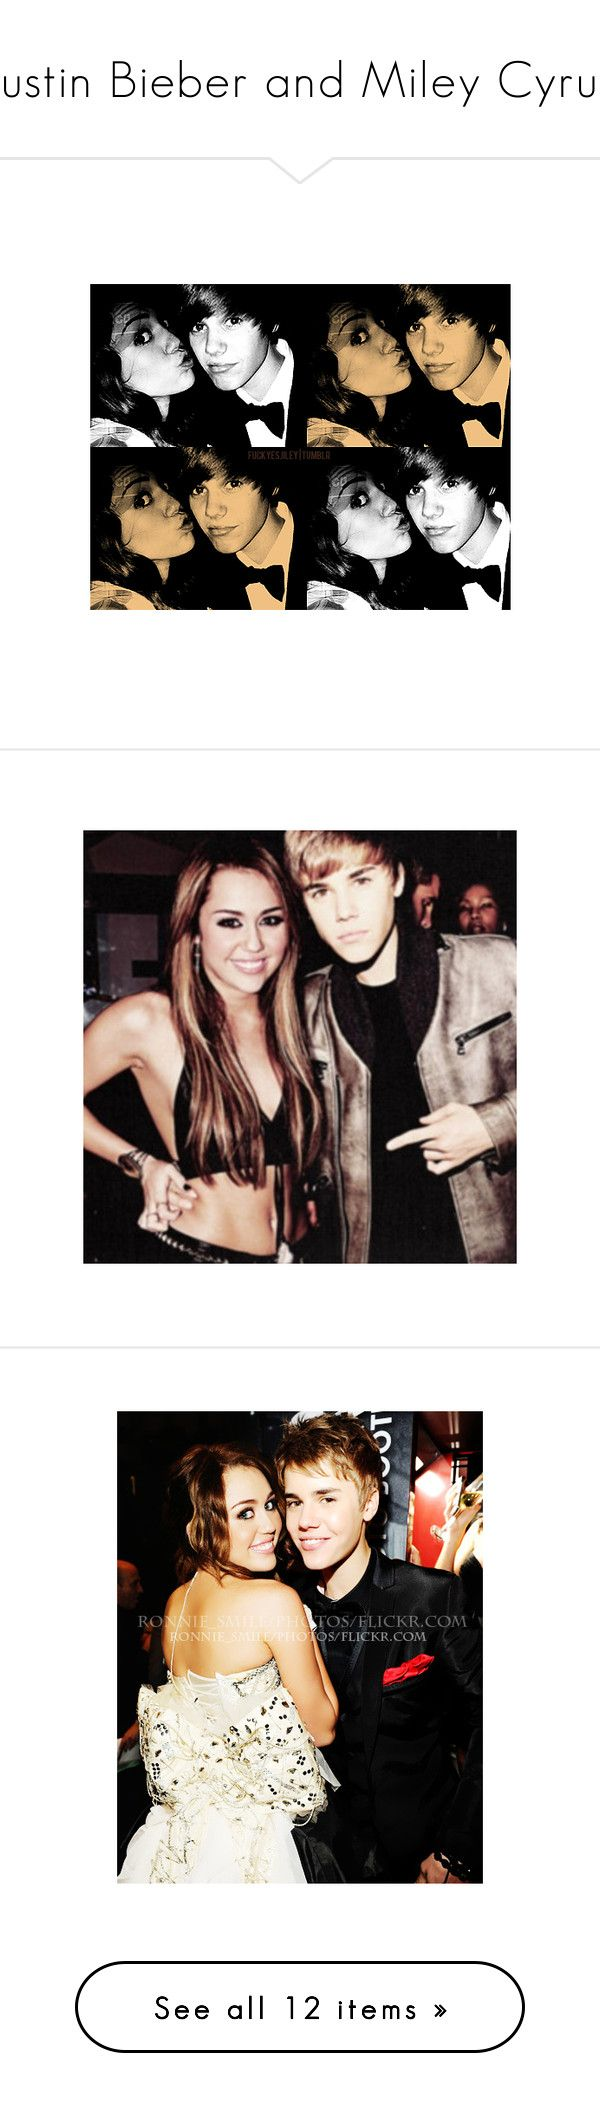 """Justin Bieber and Miley Cyrus"" by freakender4life ❤ liked on Polyvore featuring jiley, miley cyrus, justin bieber, pictures, celebrities, justin & miley, justin and icons"